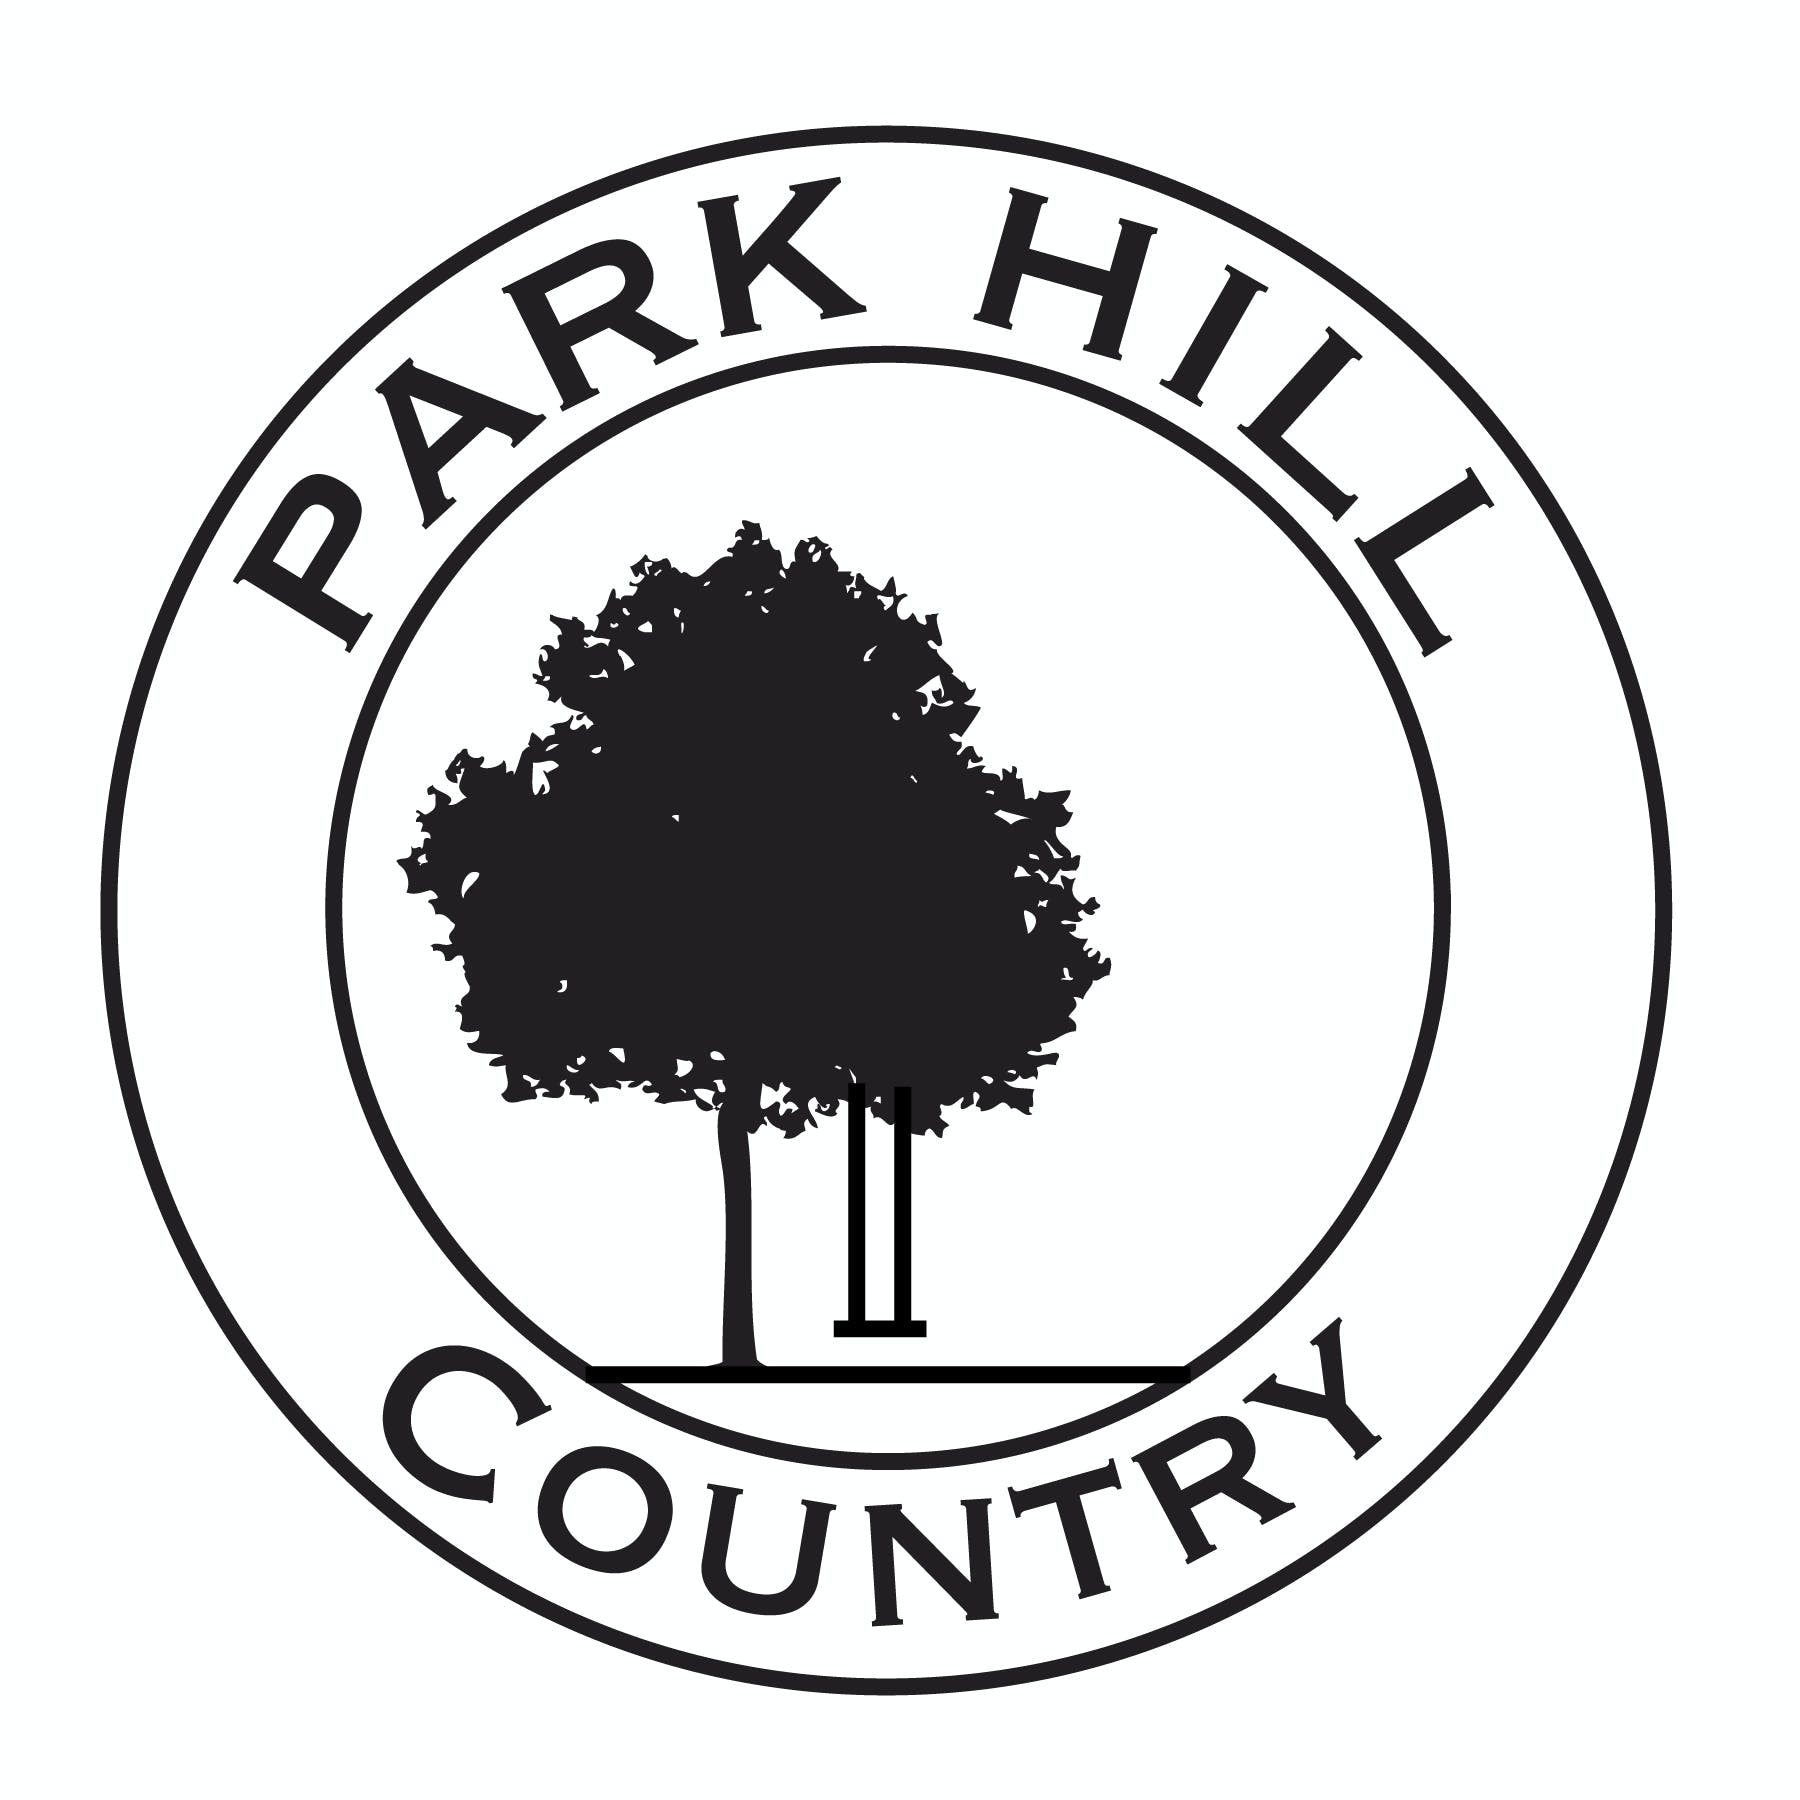 Park Hill Country logo